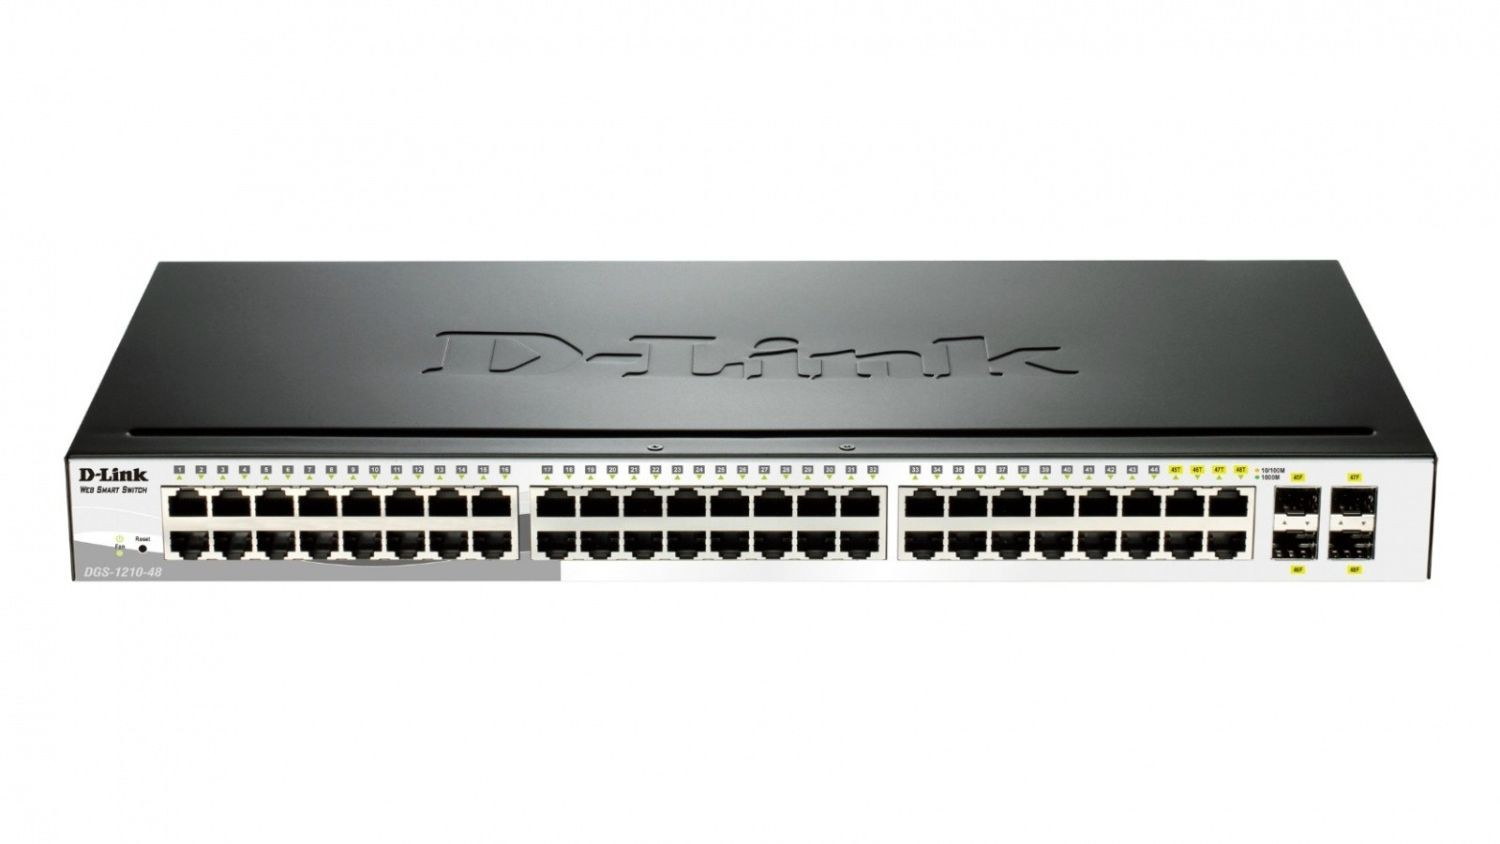 D-Link 48-port 10/100/1000 Gigabit Smart Switch including 4 Combo 1000BaseT/SFP